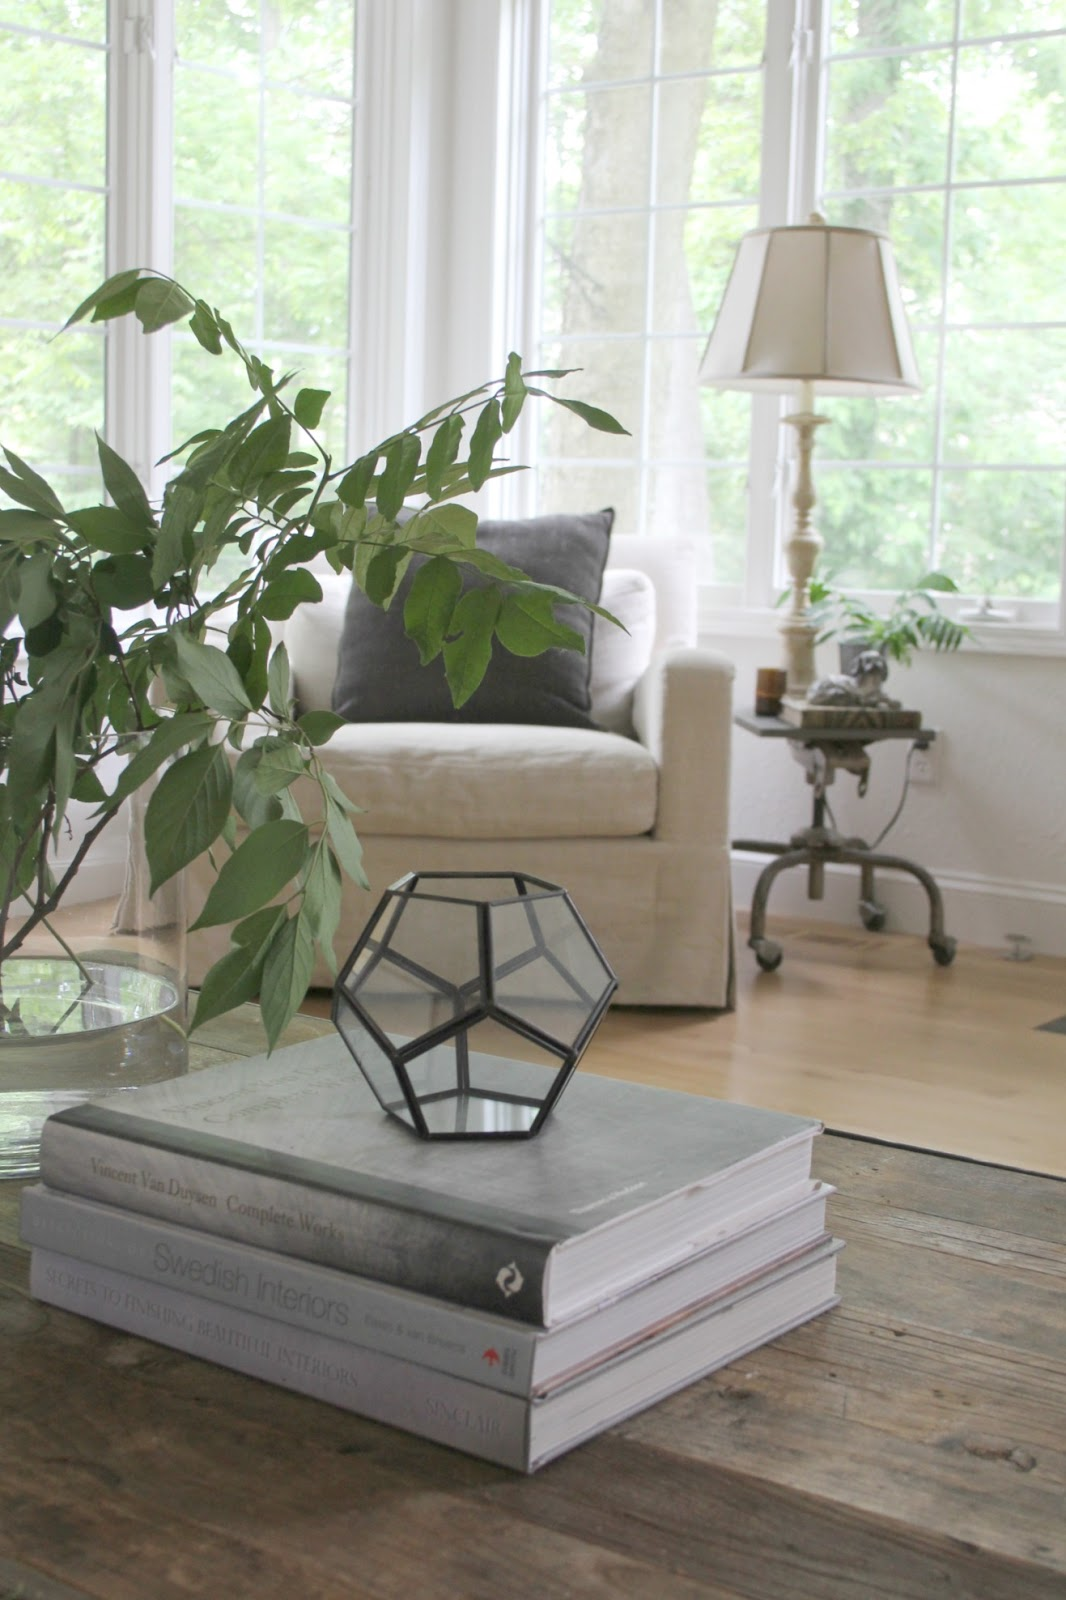 French inspired and European country informed, this cozy living room with Belgian linen is simple and serene - Hello Lovely Studio.